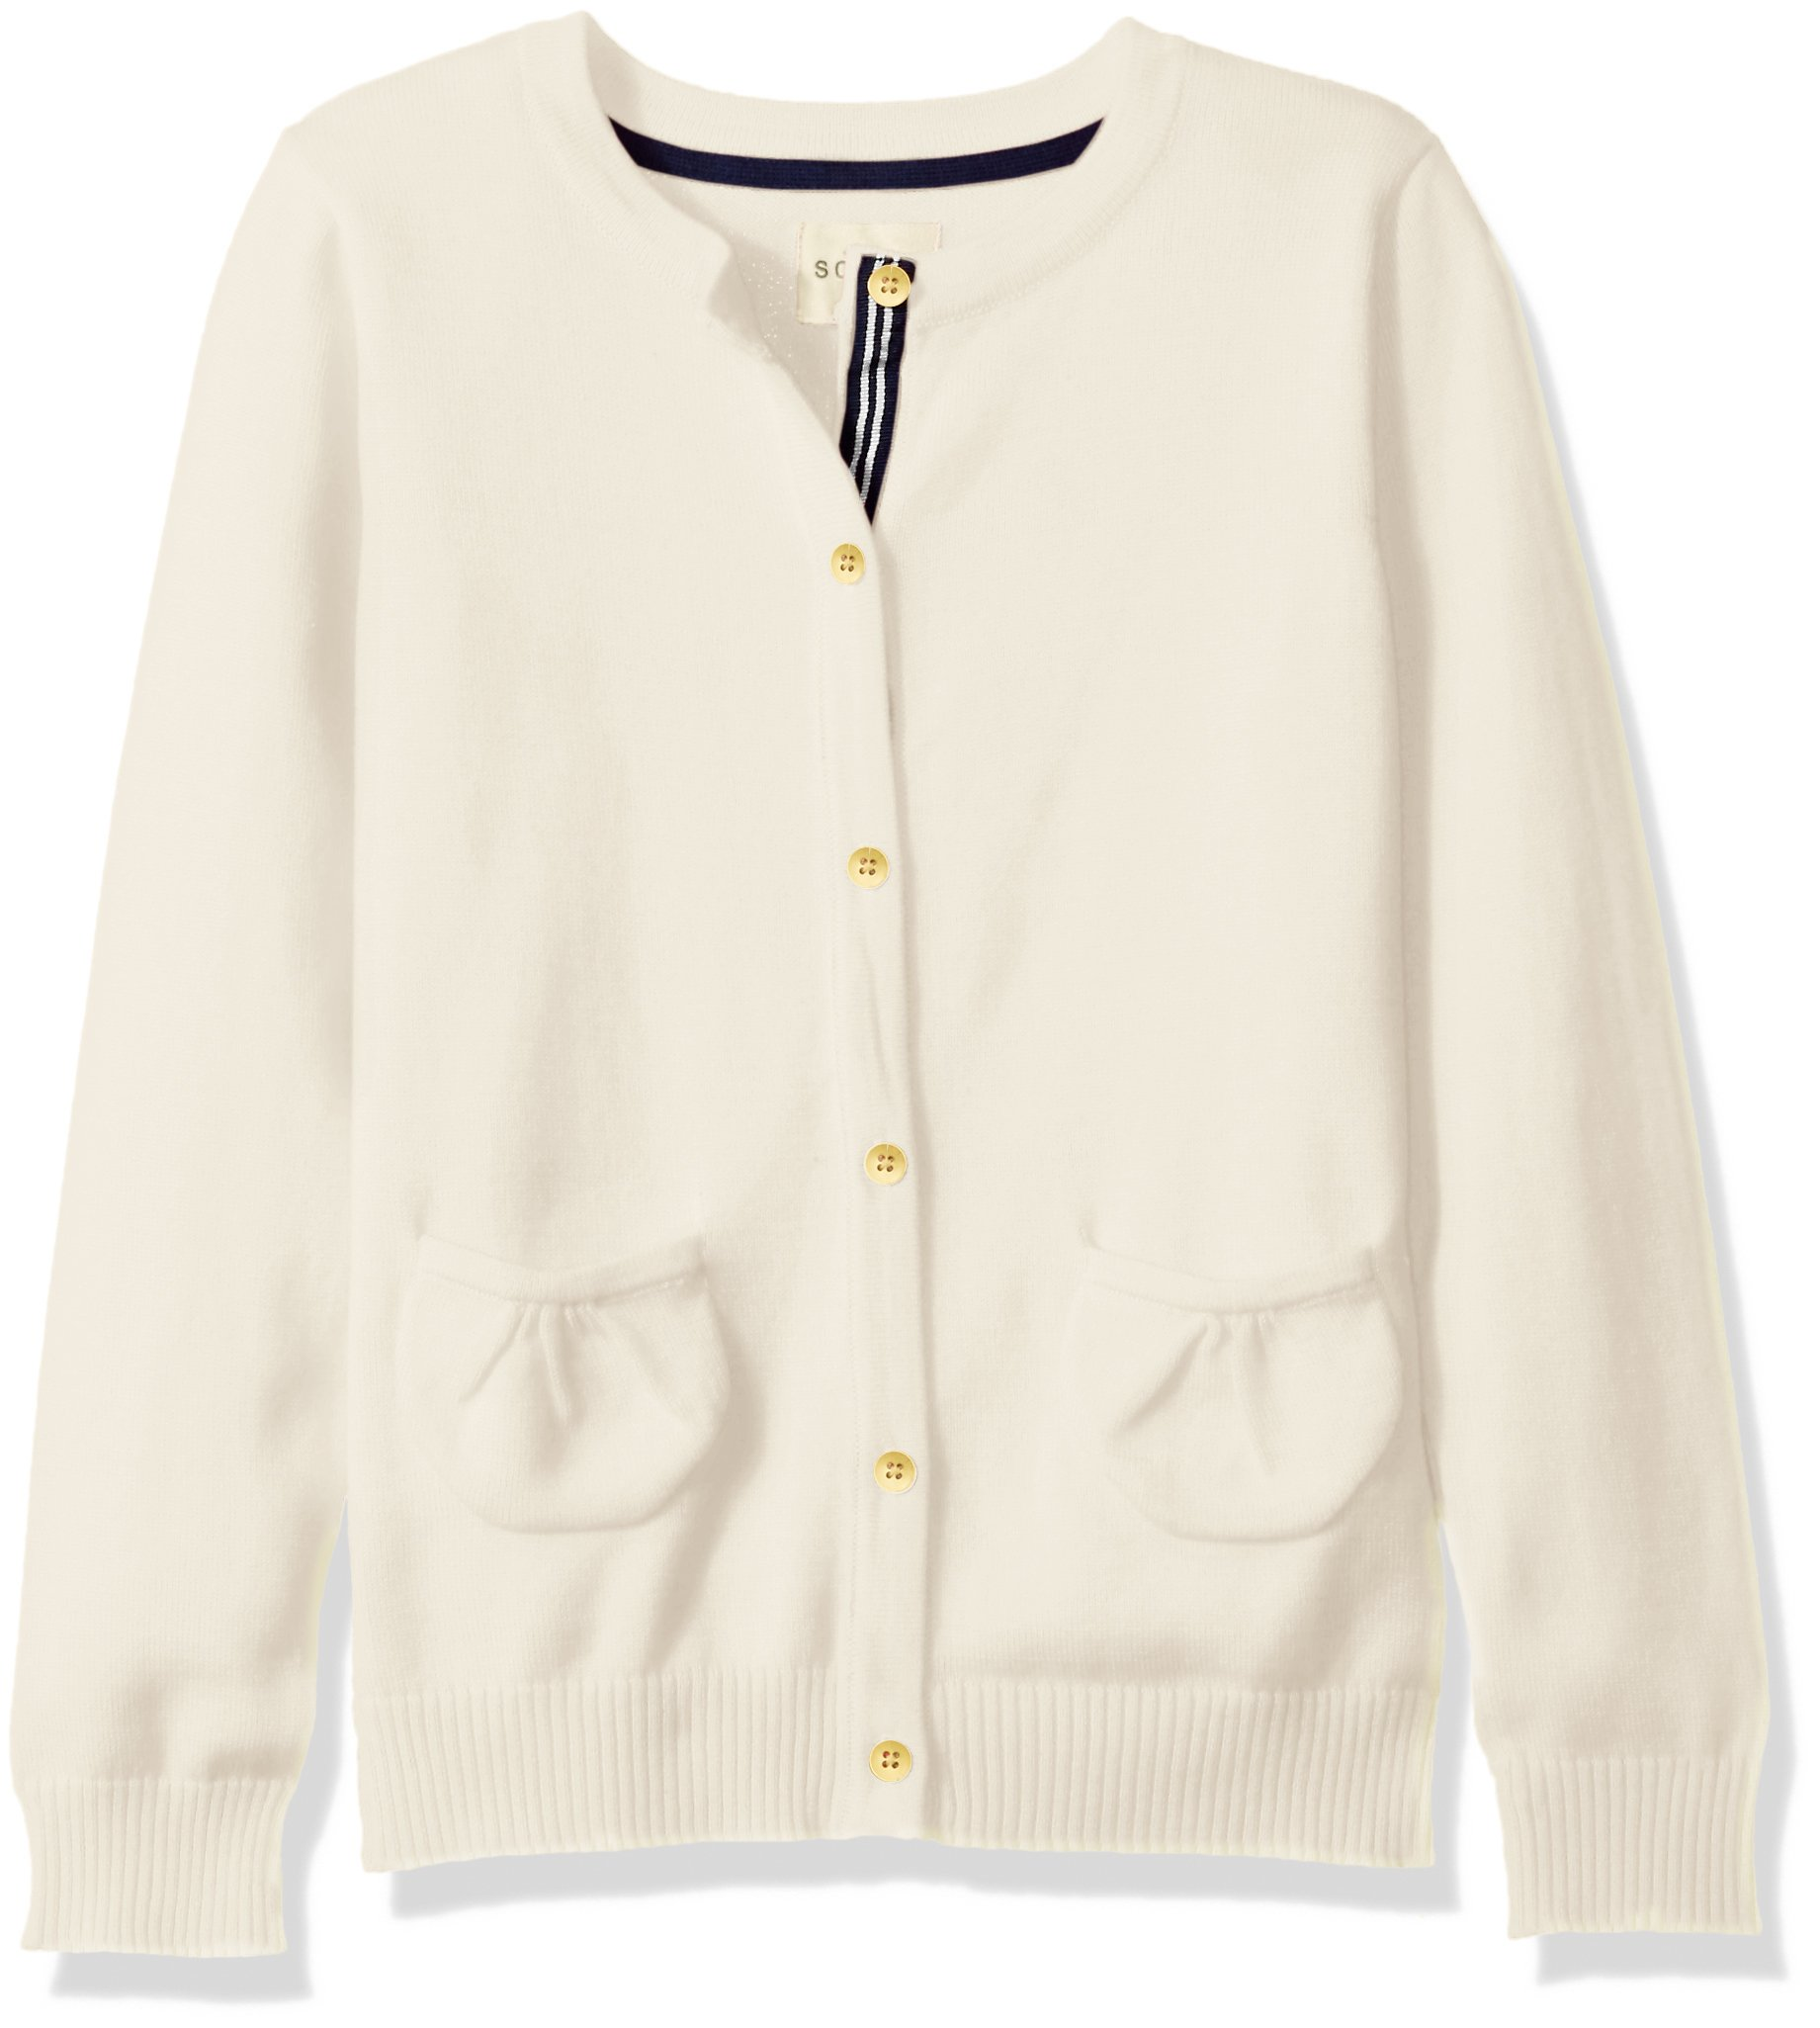 Scout + Ro Little Girls' Button-Front Cardigan Sweater, Frost Cream, 5